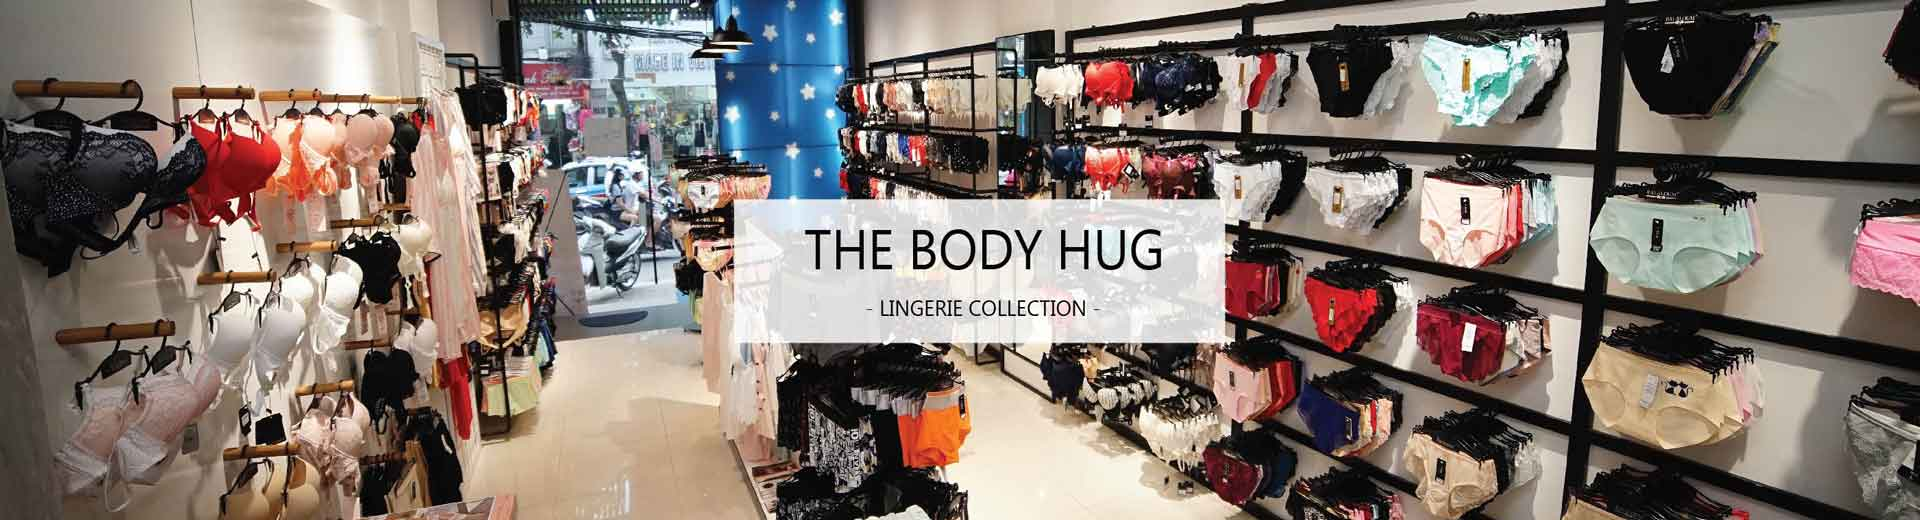 Showroom cửa hàng The Body Hug